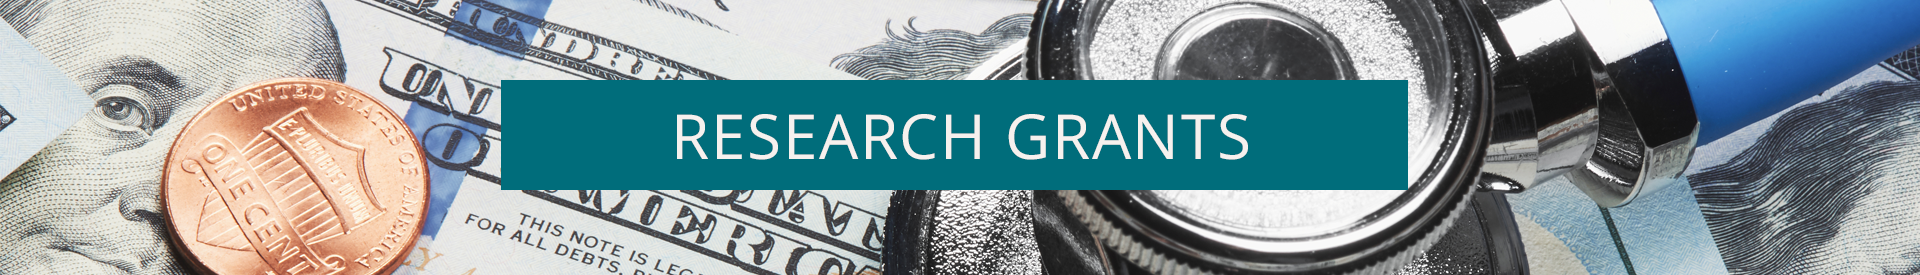 Research_Grants